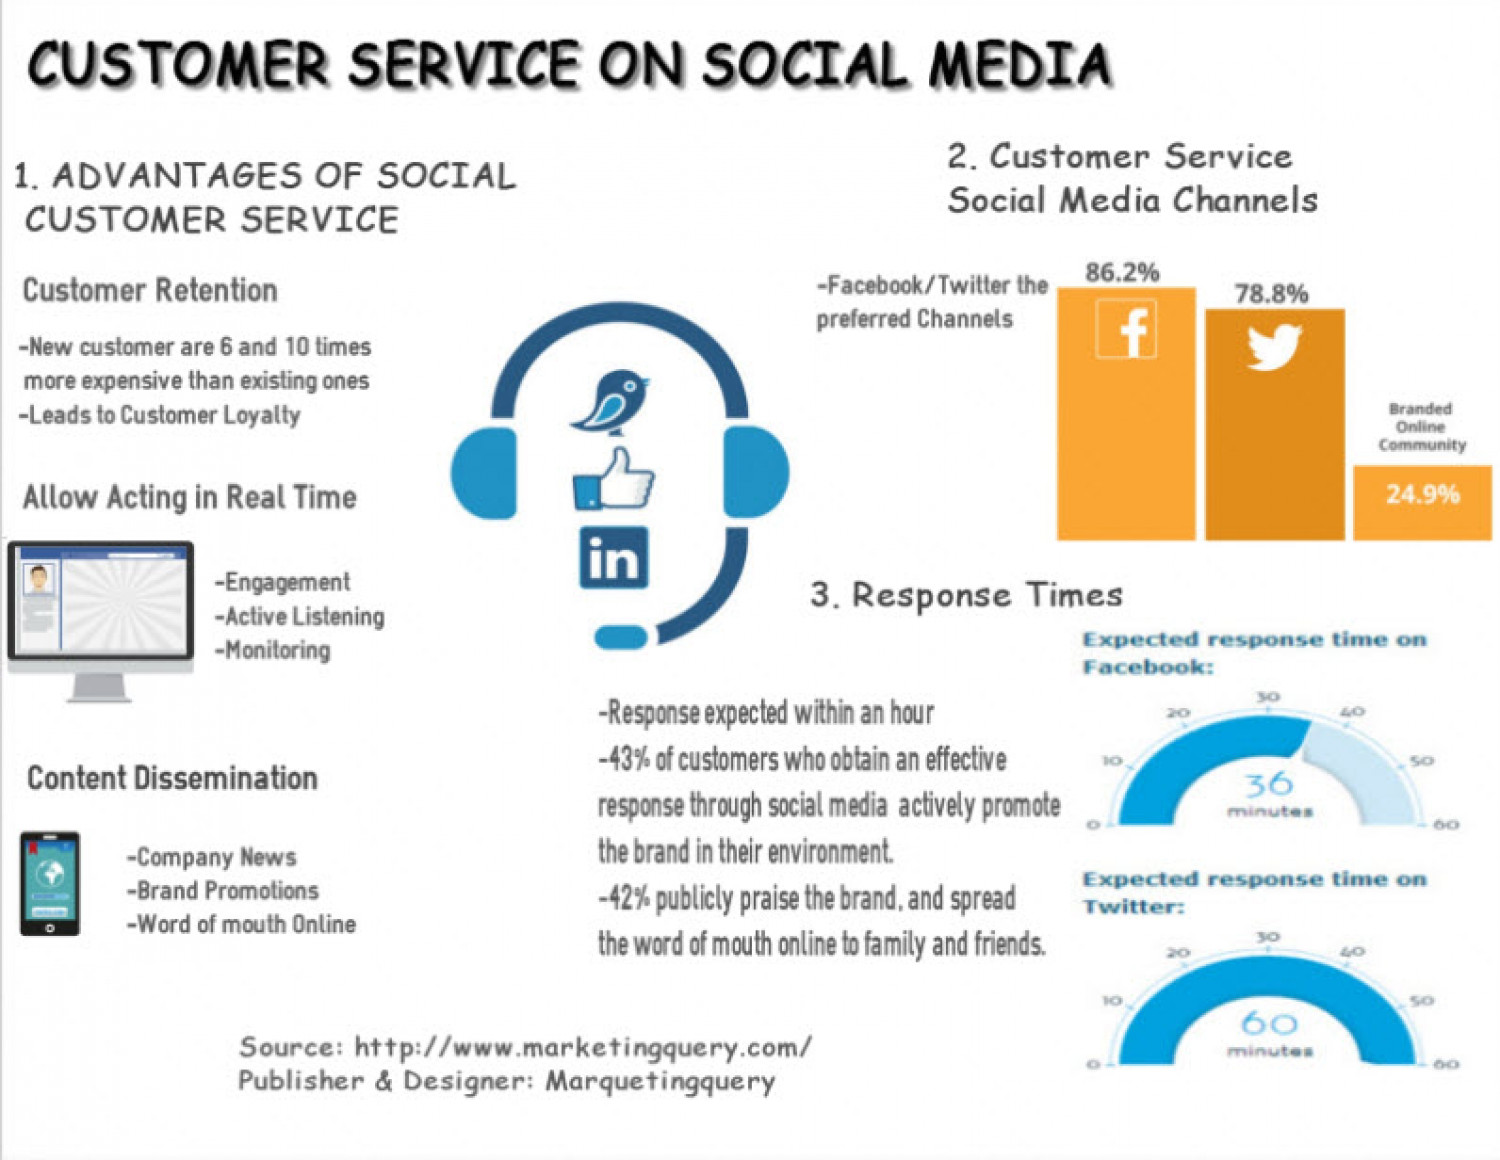 Customer Service on Social Media Infographic